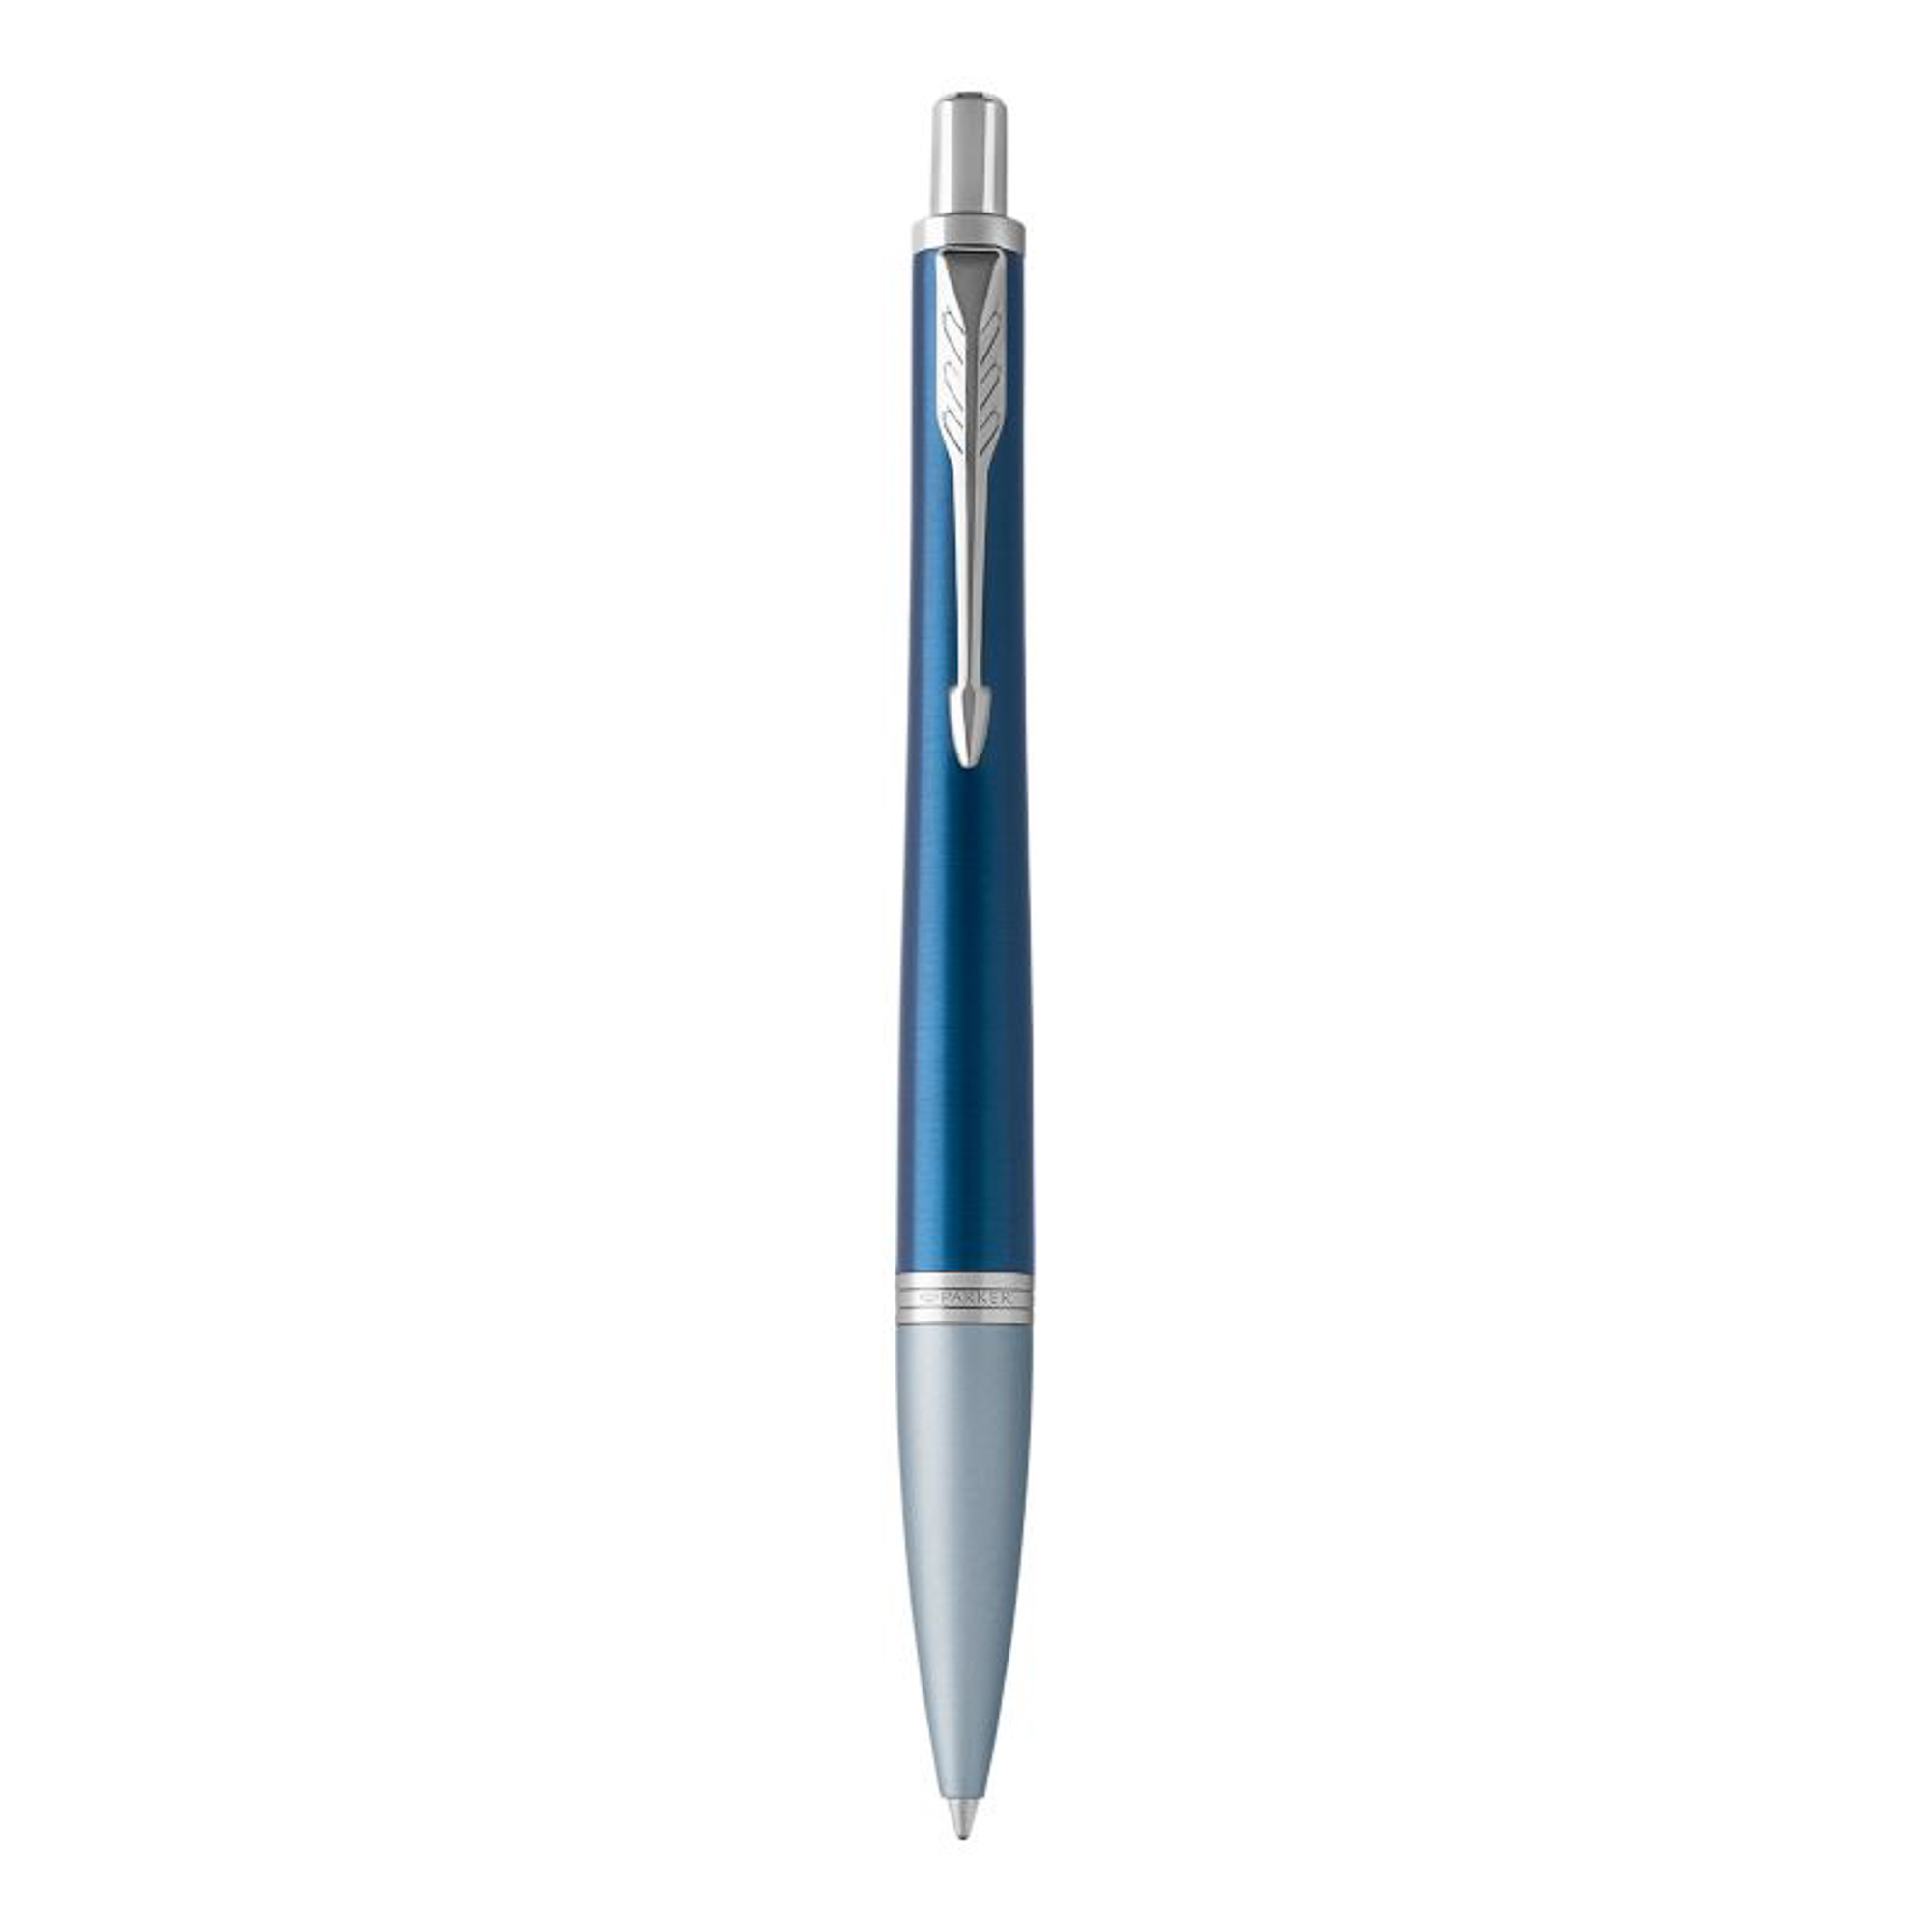 Шариковая ручка Parker Urban Premium Dark Blue CT, K310, Mblue PARKER-1931565 фото